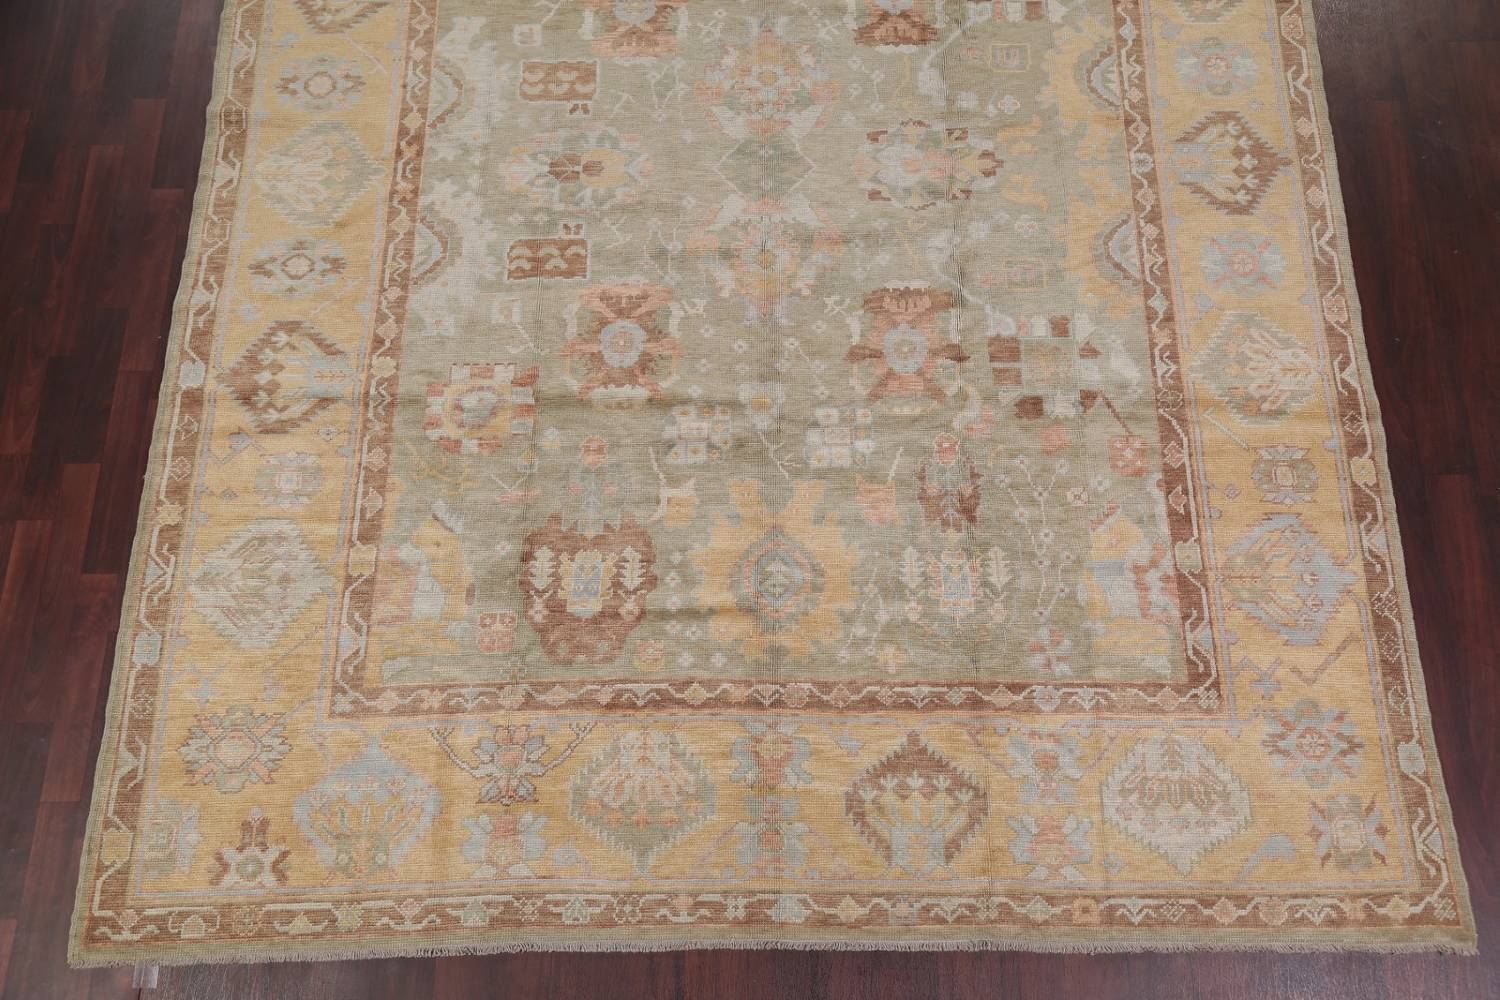 Vegetable Dye Muted Green Oushak Turkish Hand-Knotted Area Rug 9x12 image 5